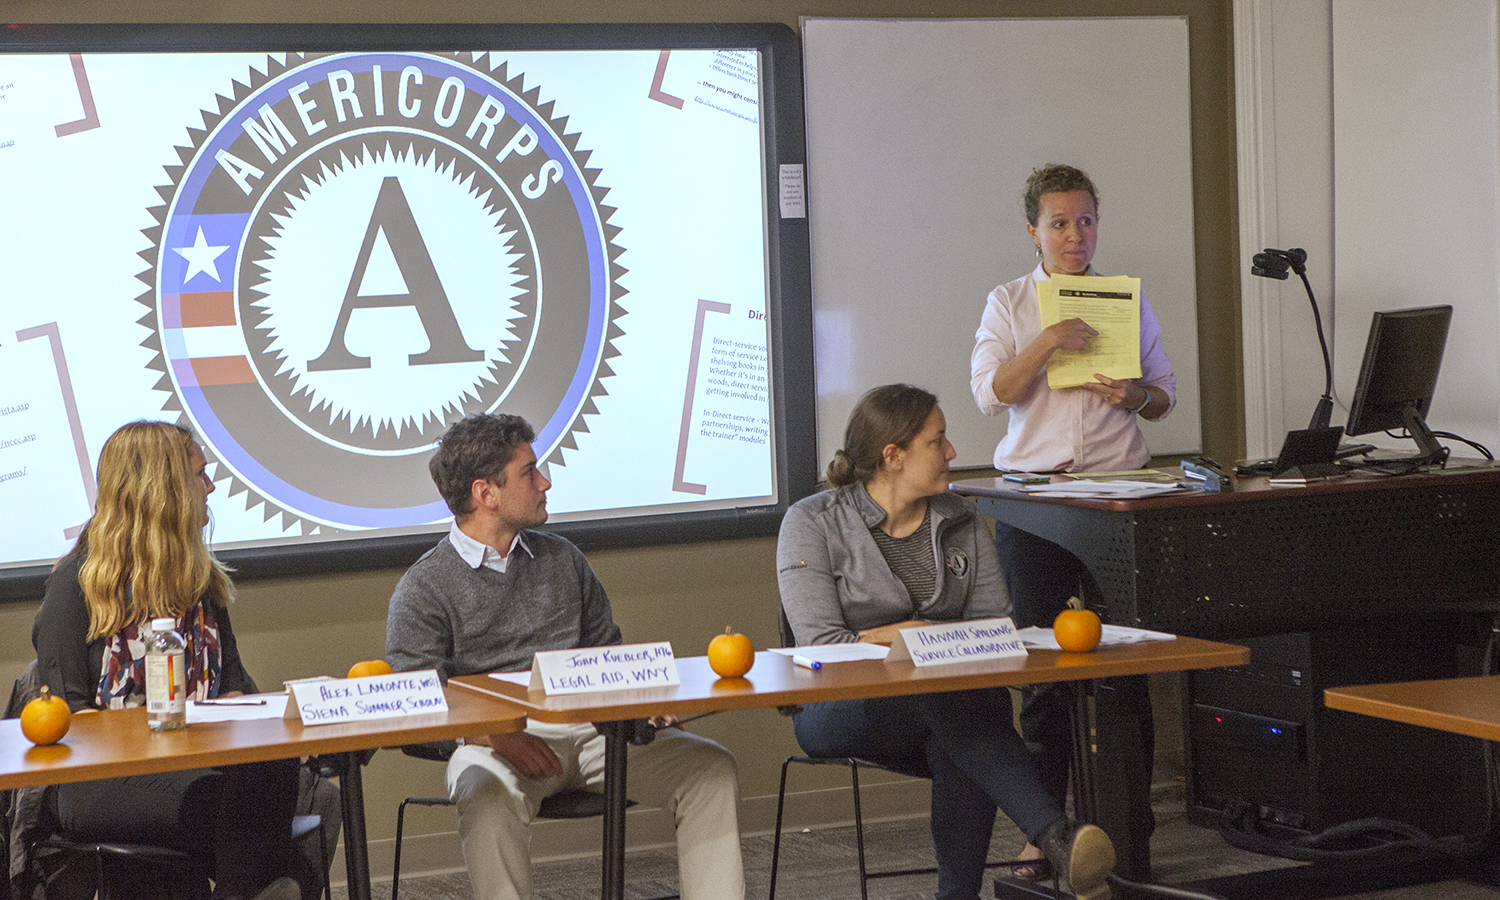 Americorps_Meeting